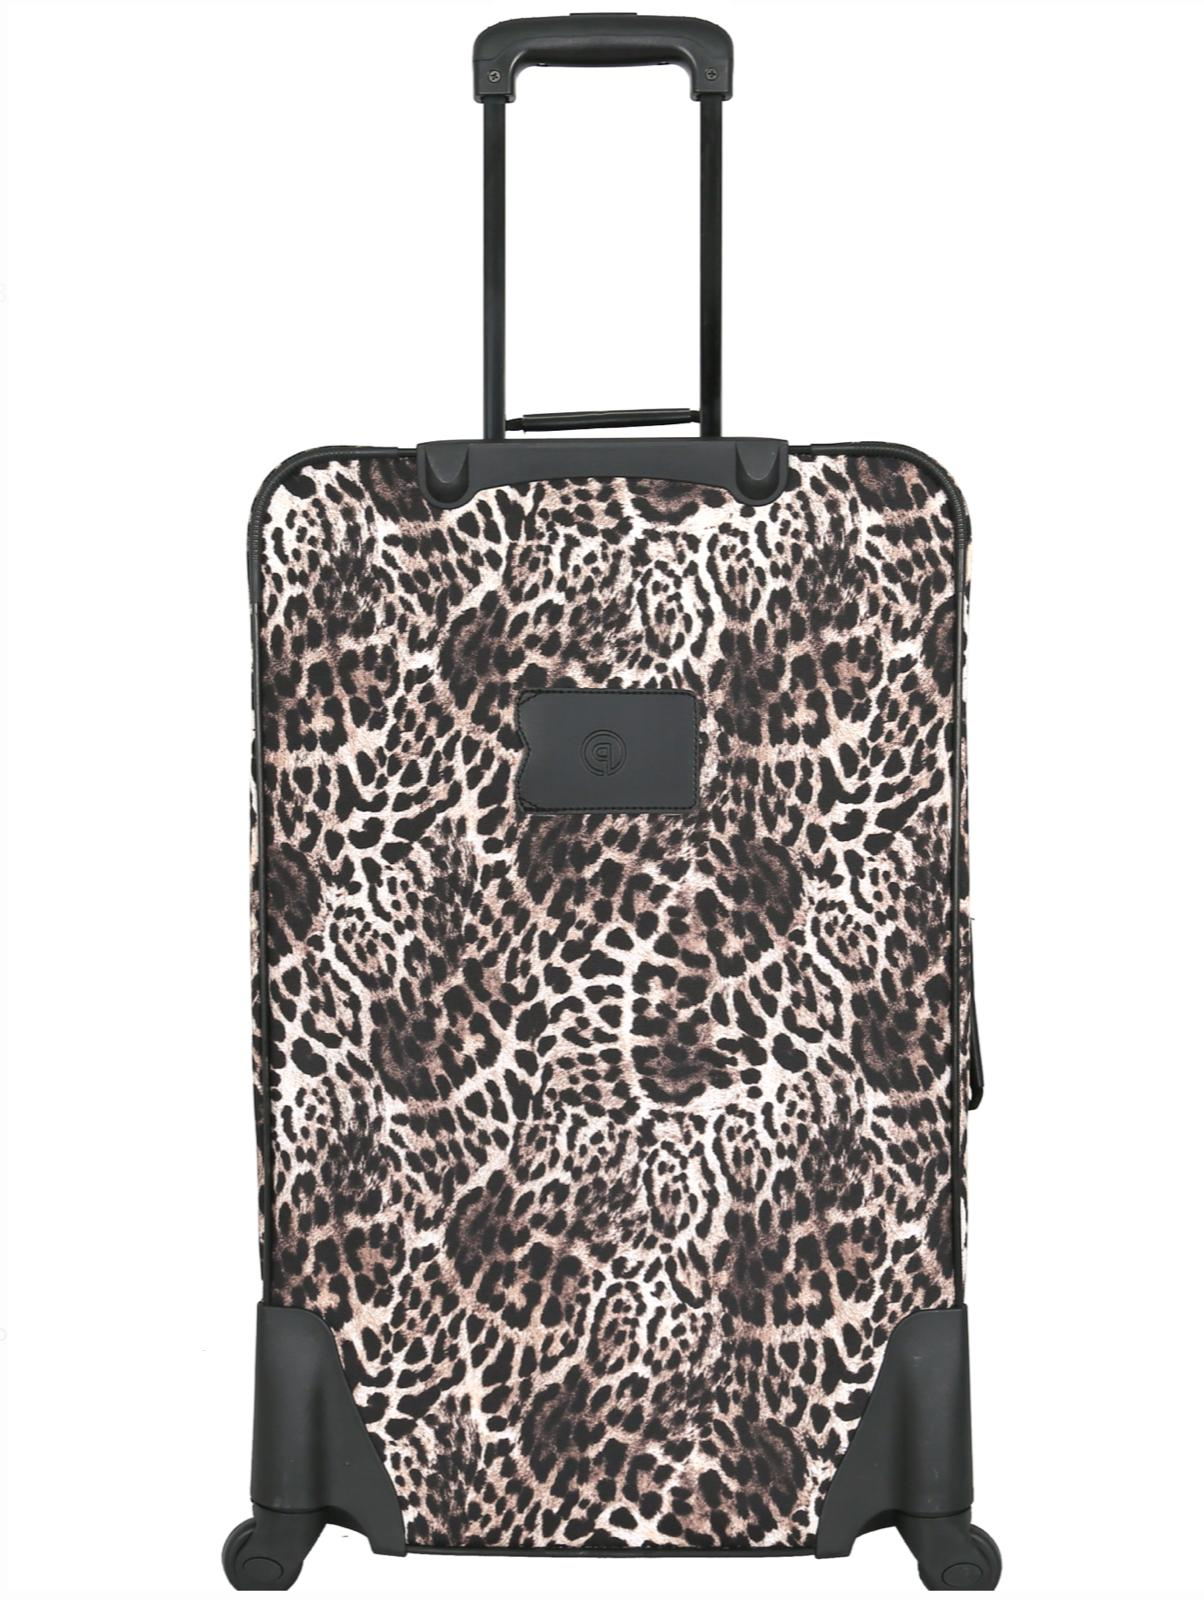 Protege Spinner Luggage Print